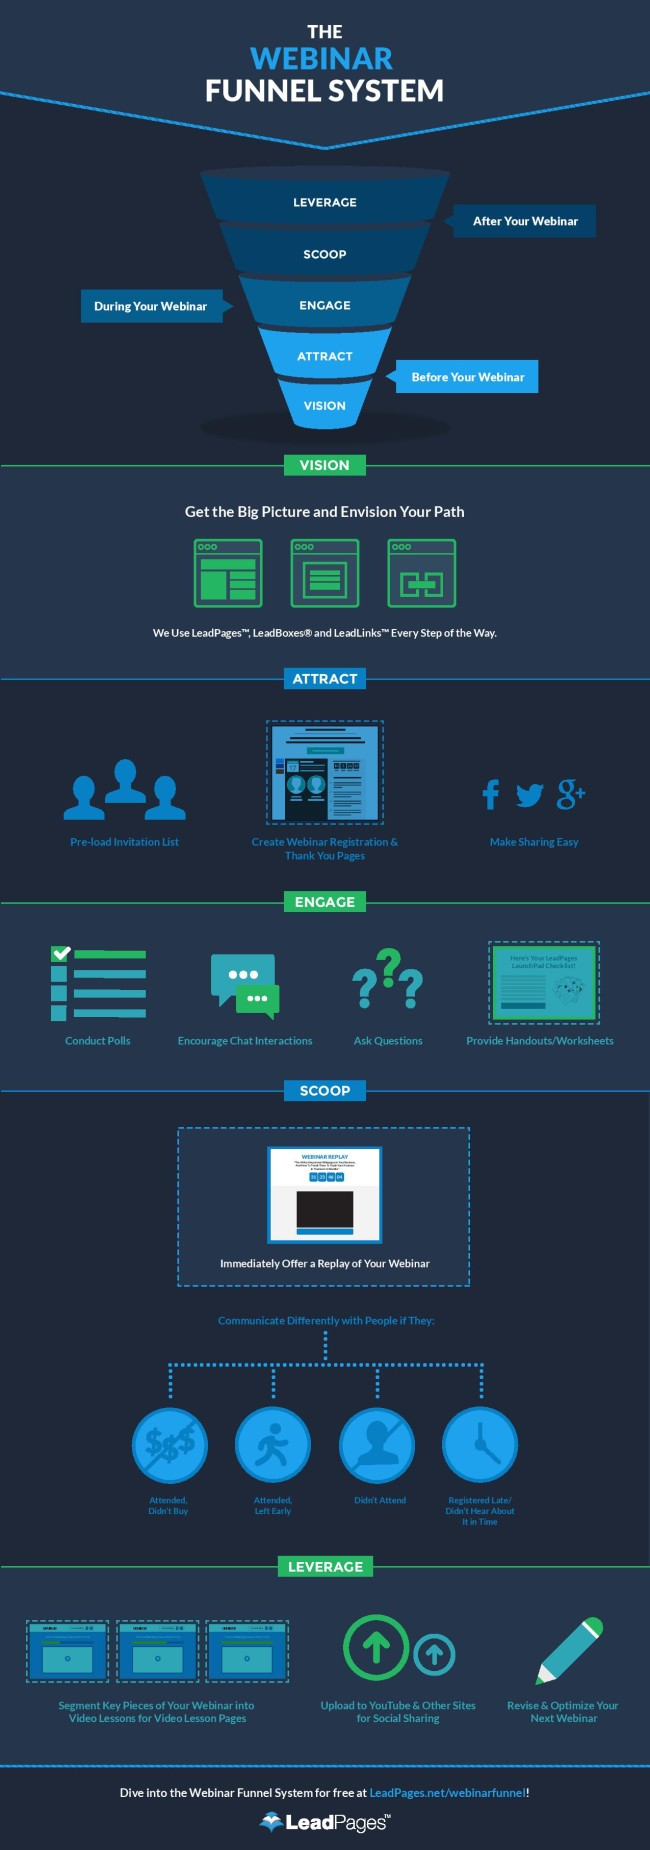 webinar-funnel-system-infographic-page-001